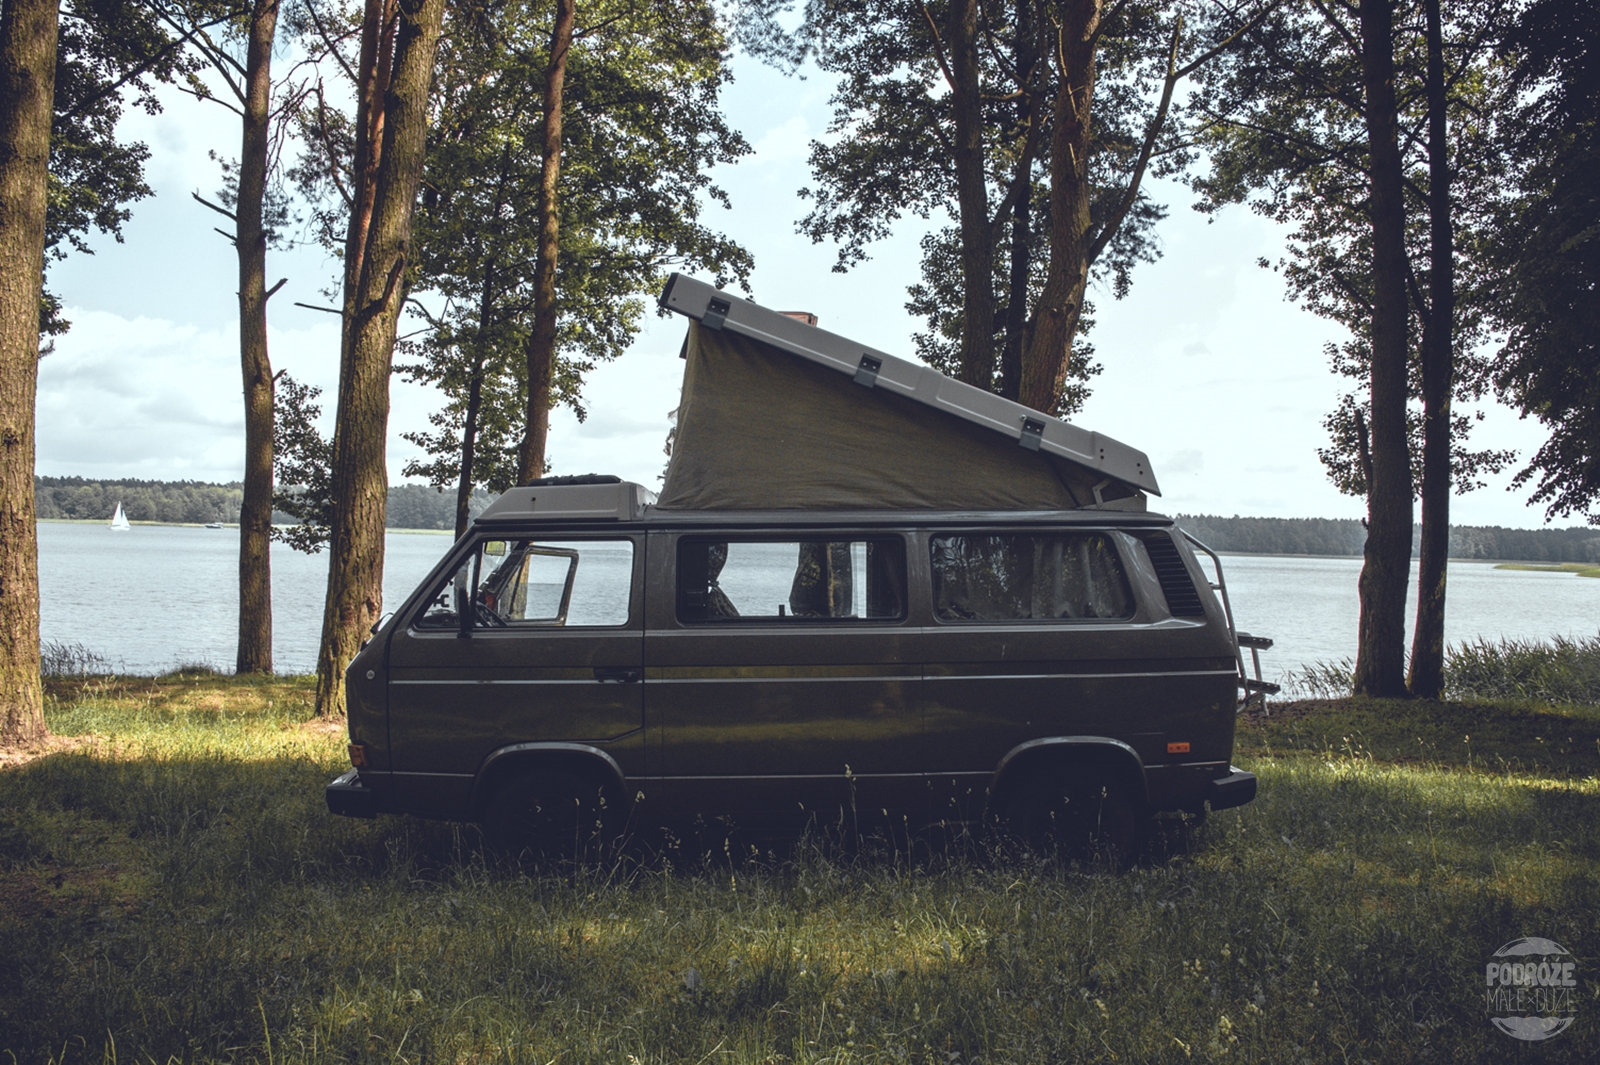 Warmia i Mazury road trip vanlife vanagon